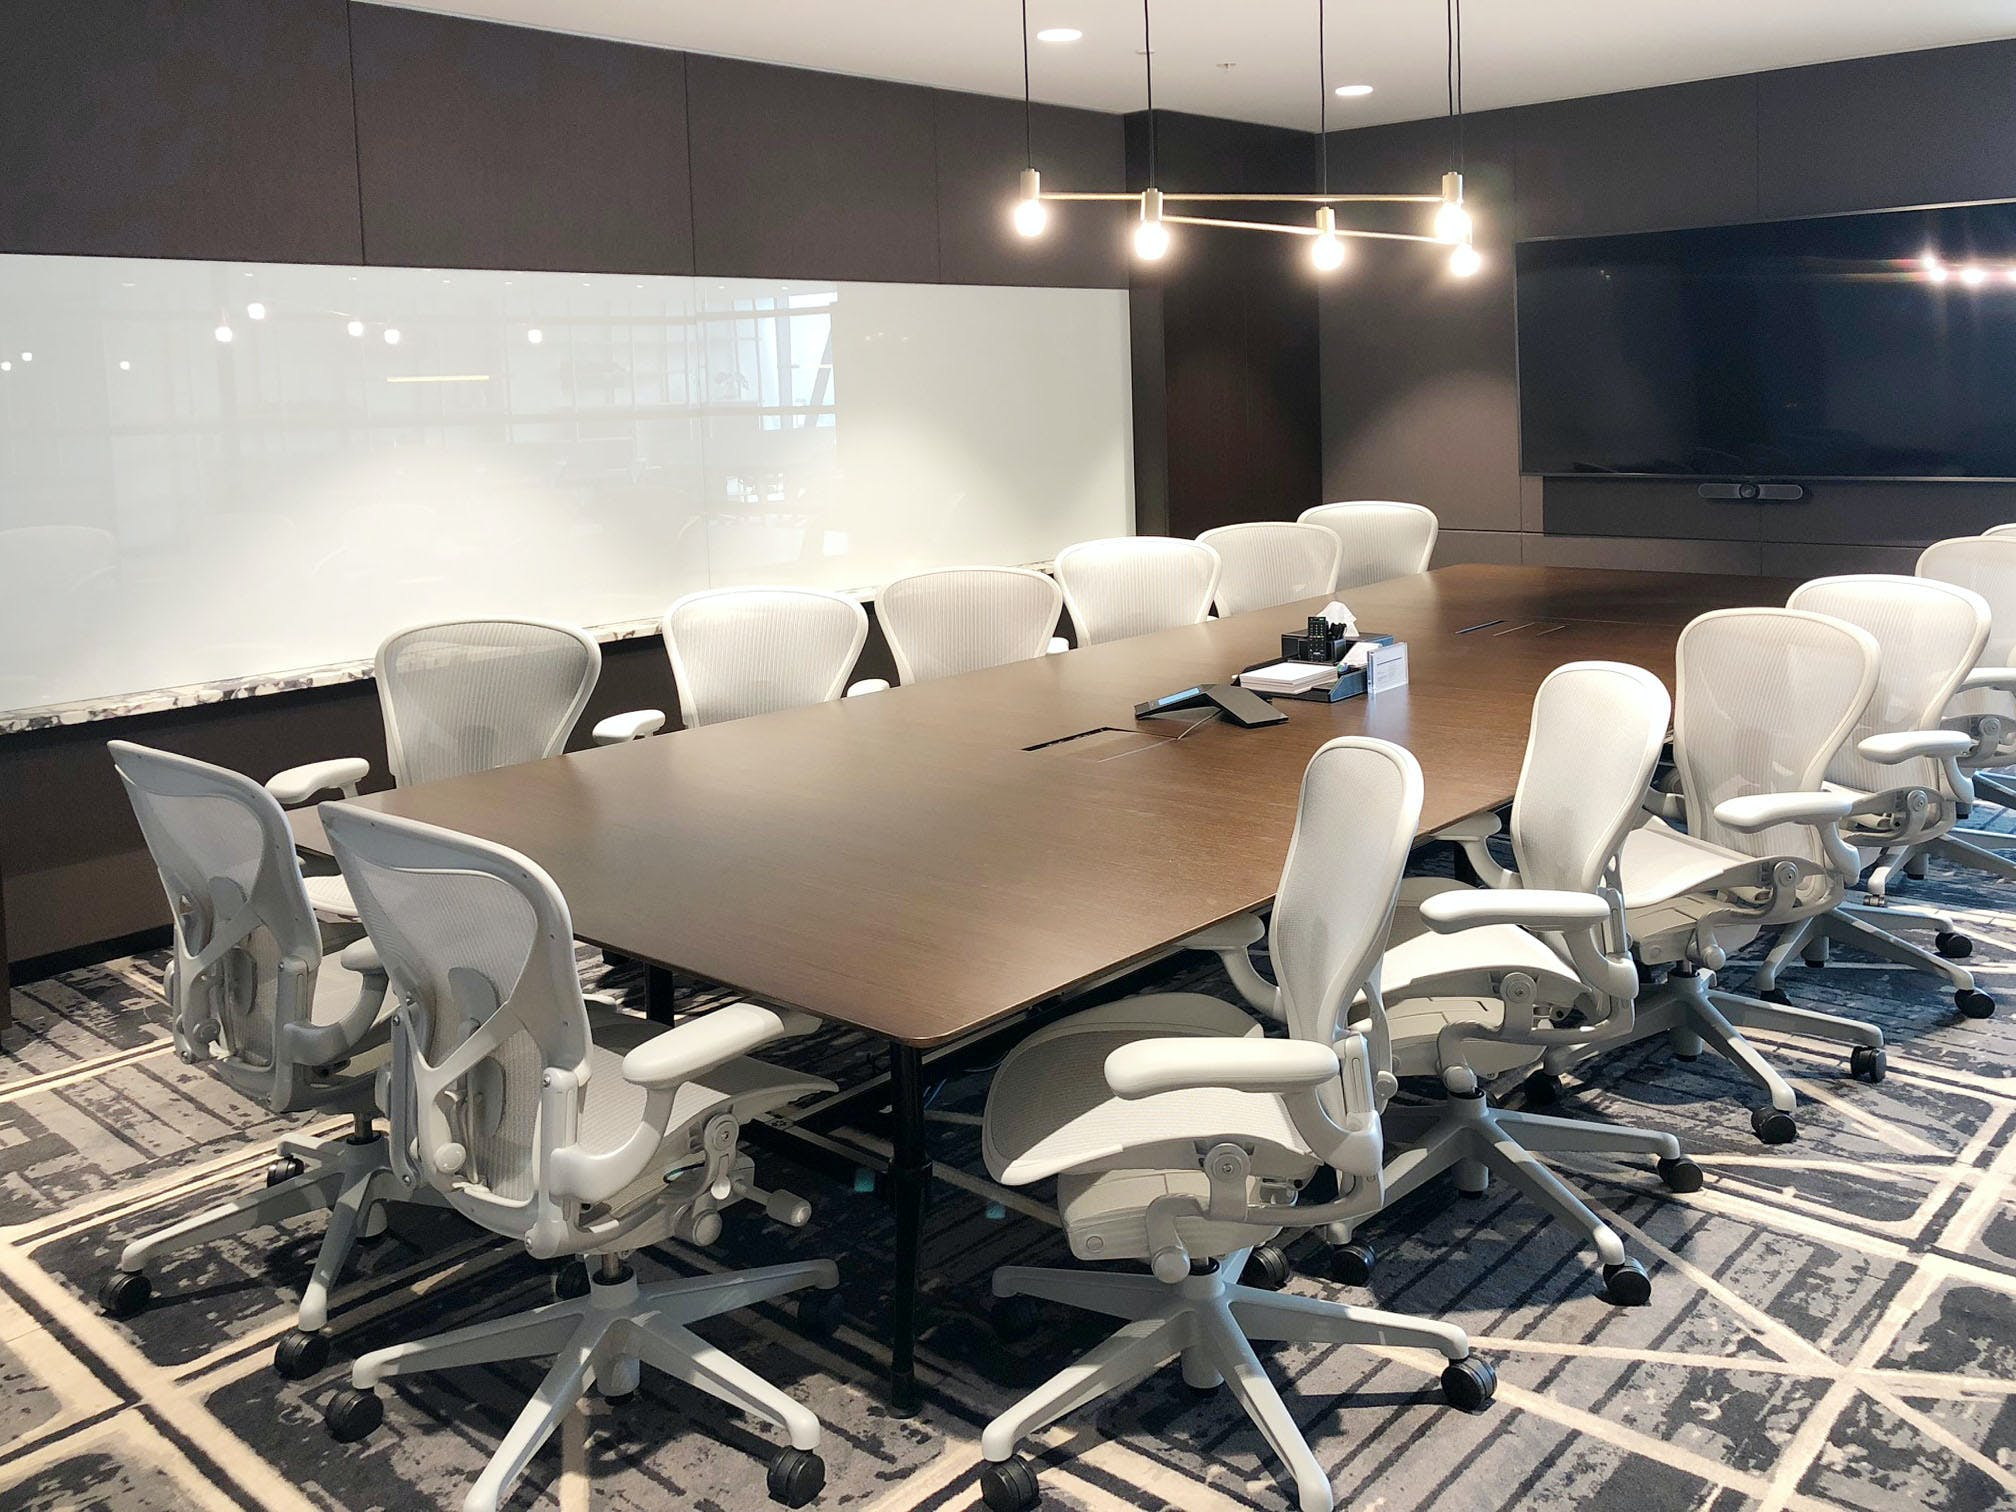 Room 23A, meeting room at The Executive Centre - Collins Square Meeting Rooms, image 1